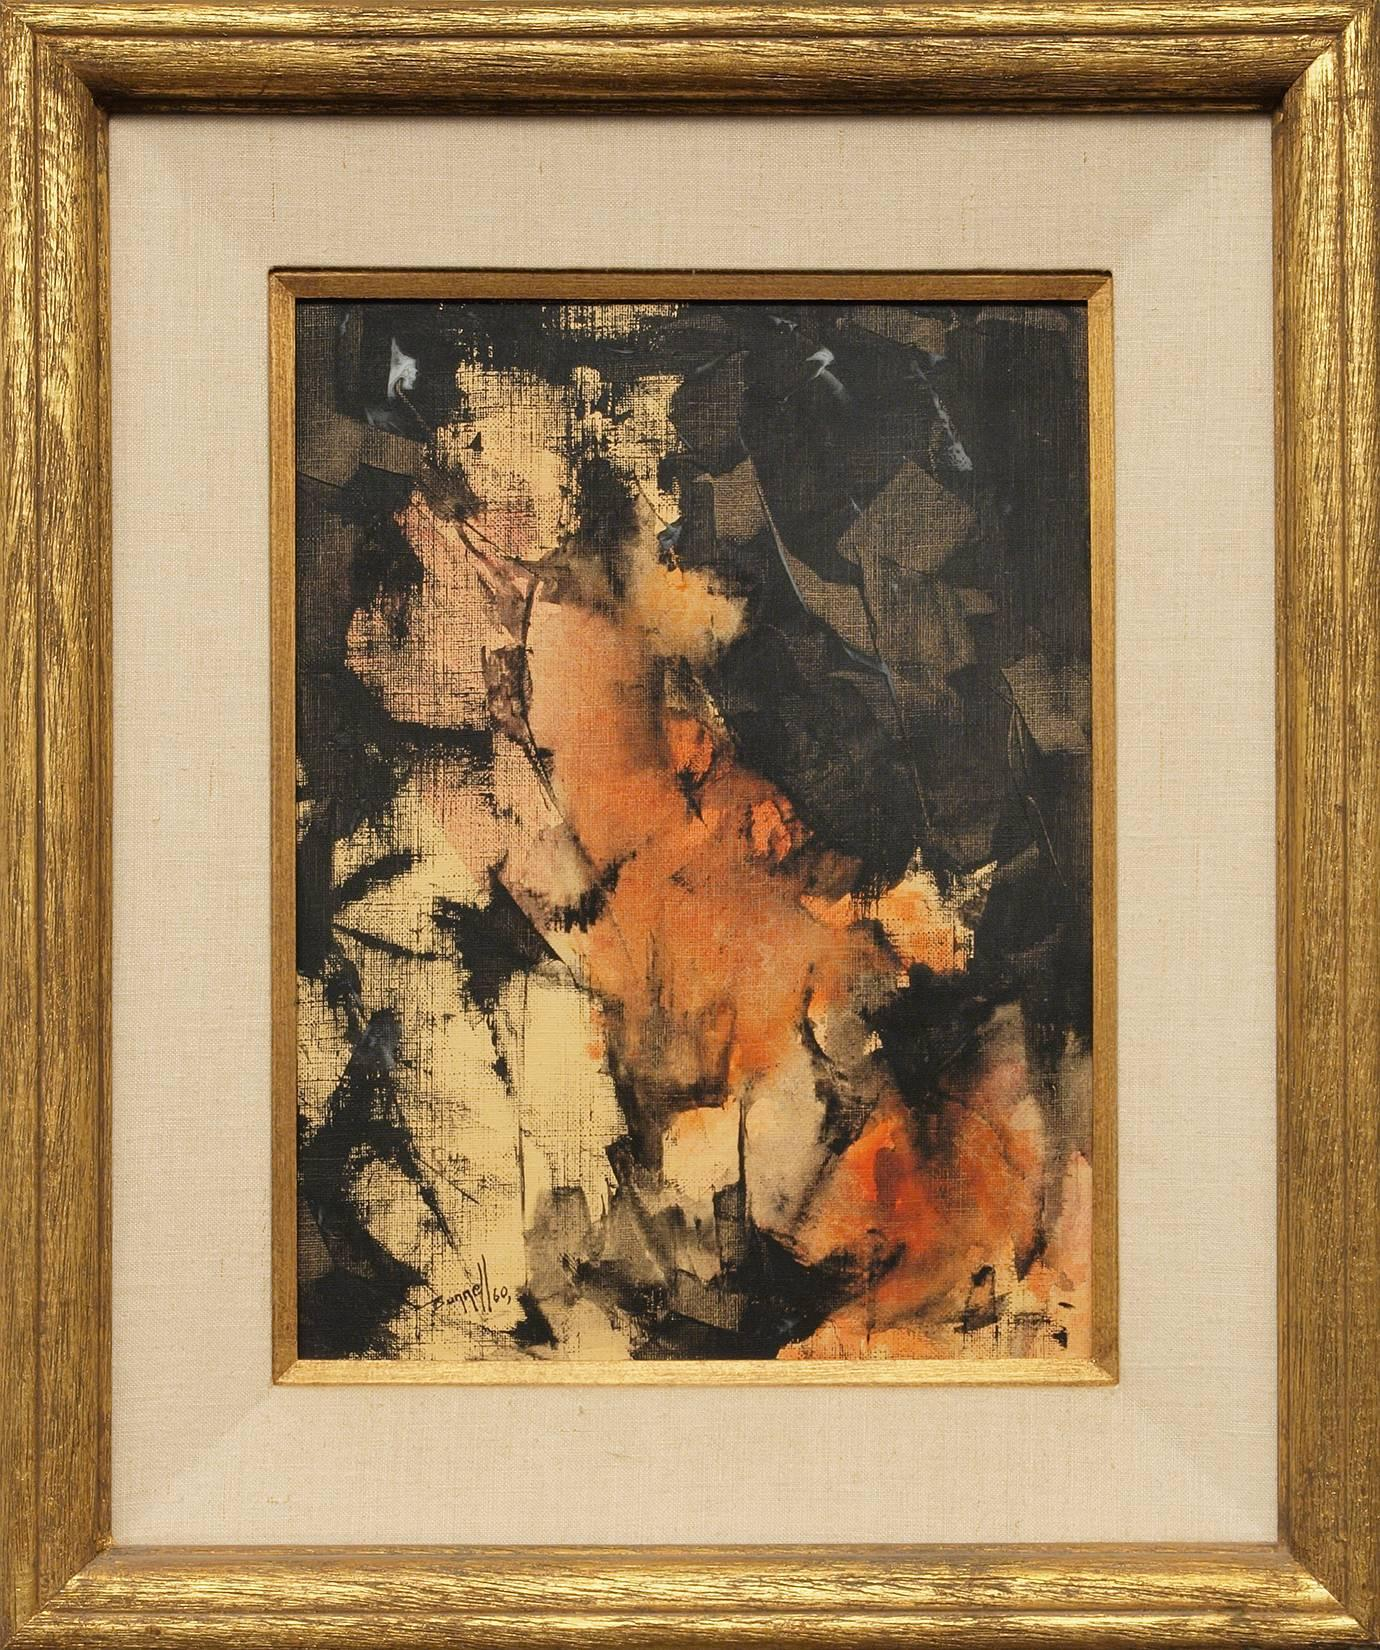 Untitled (Abstract Expressionist Painting with Orange & Black, 1960)